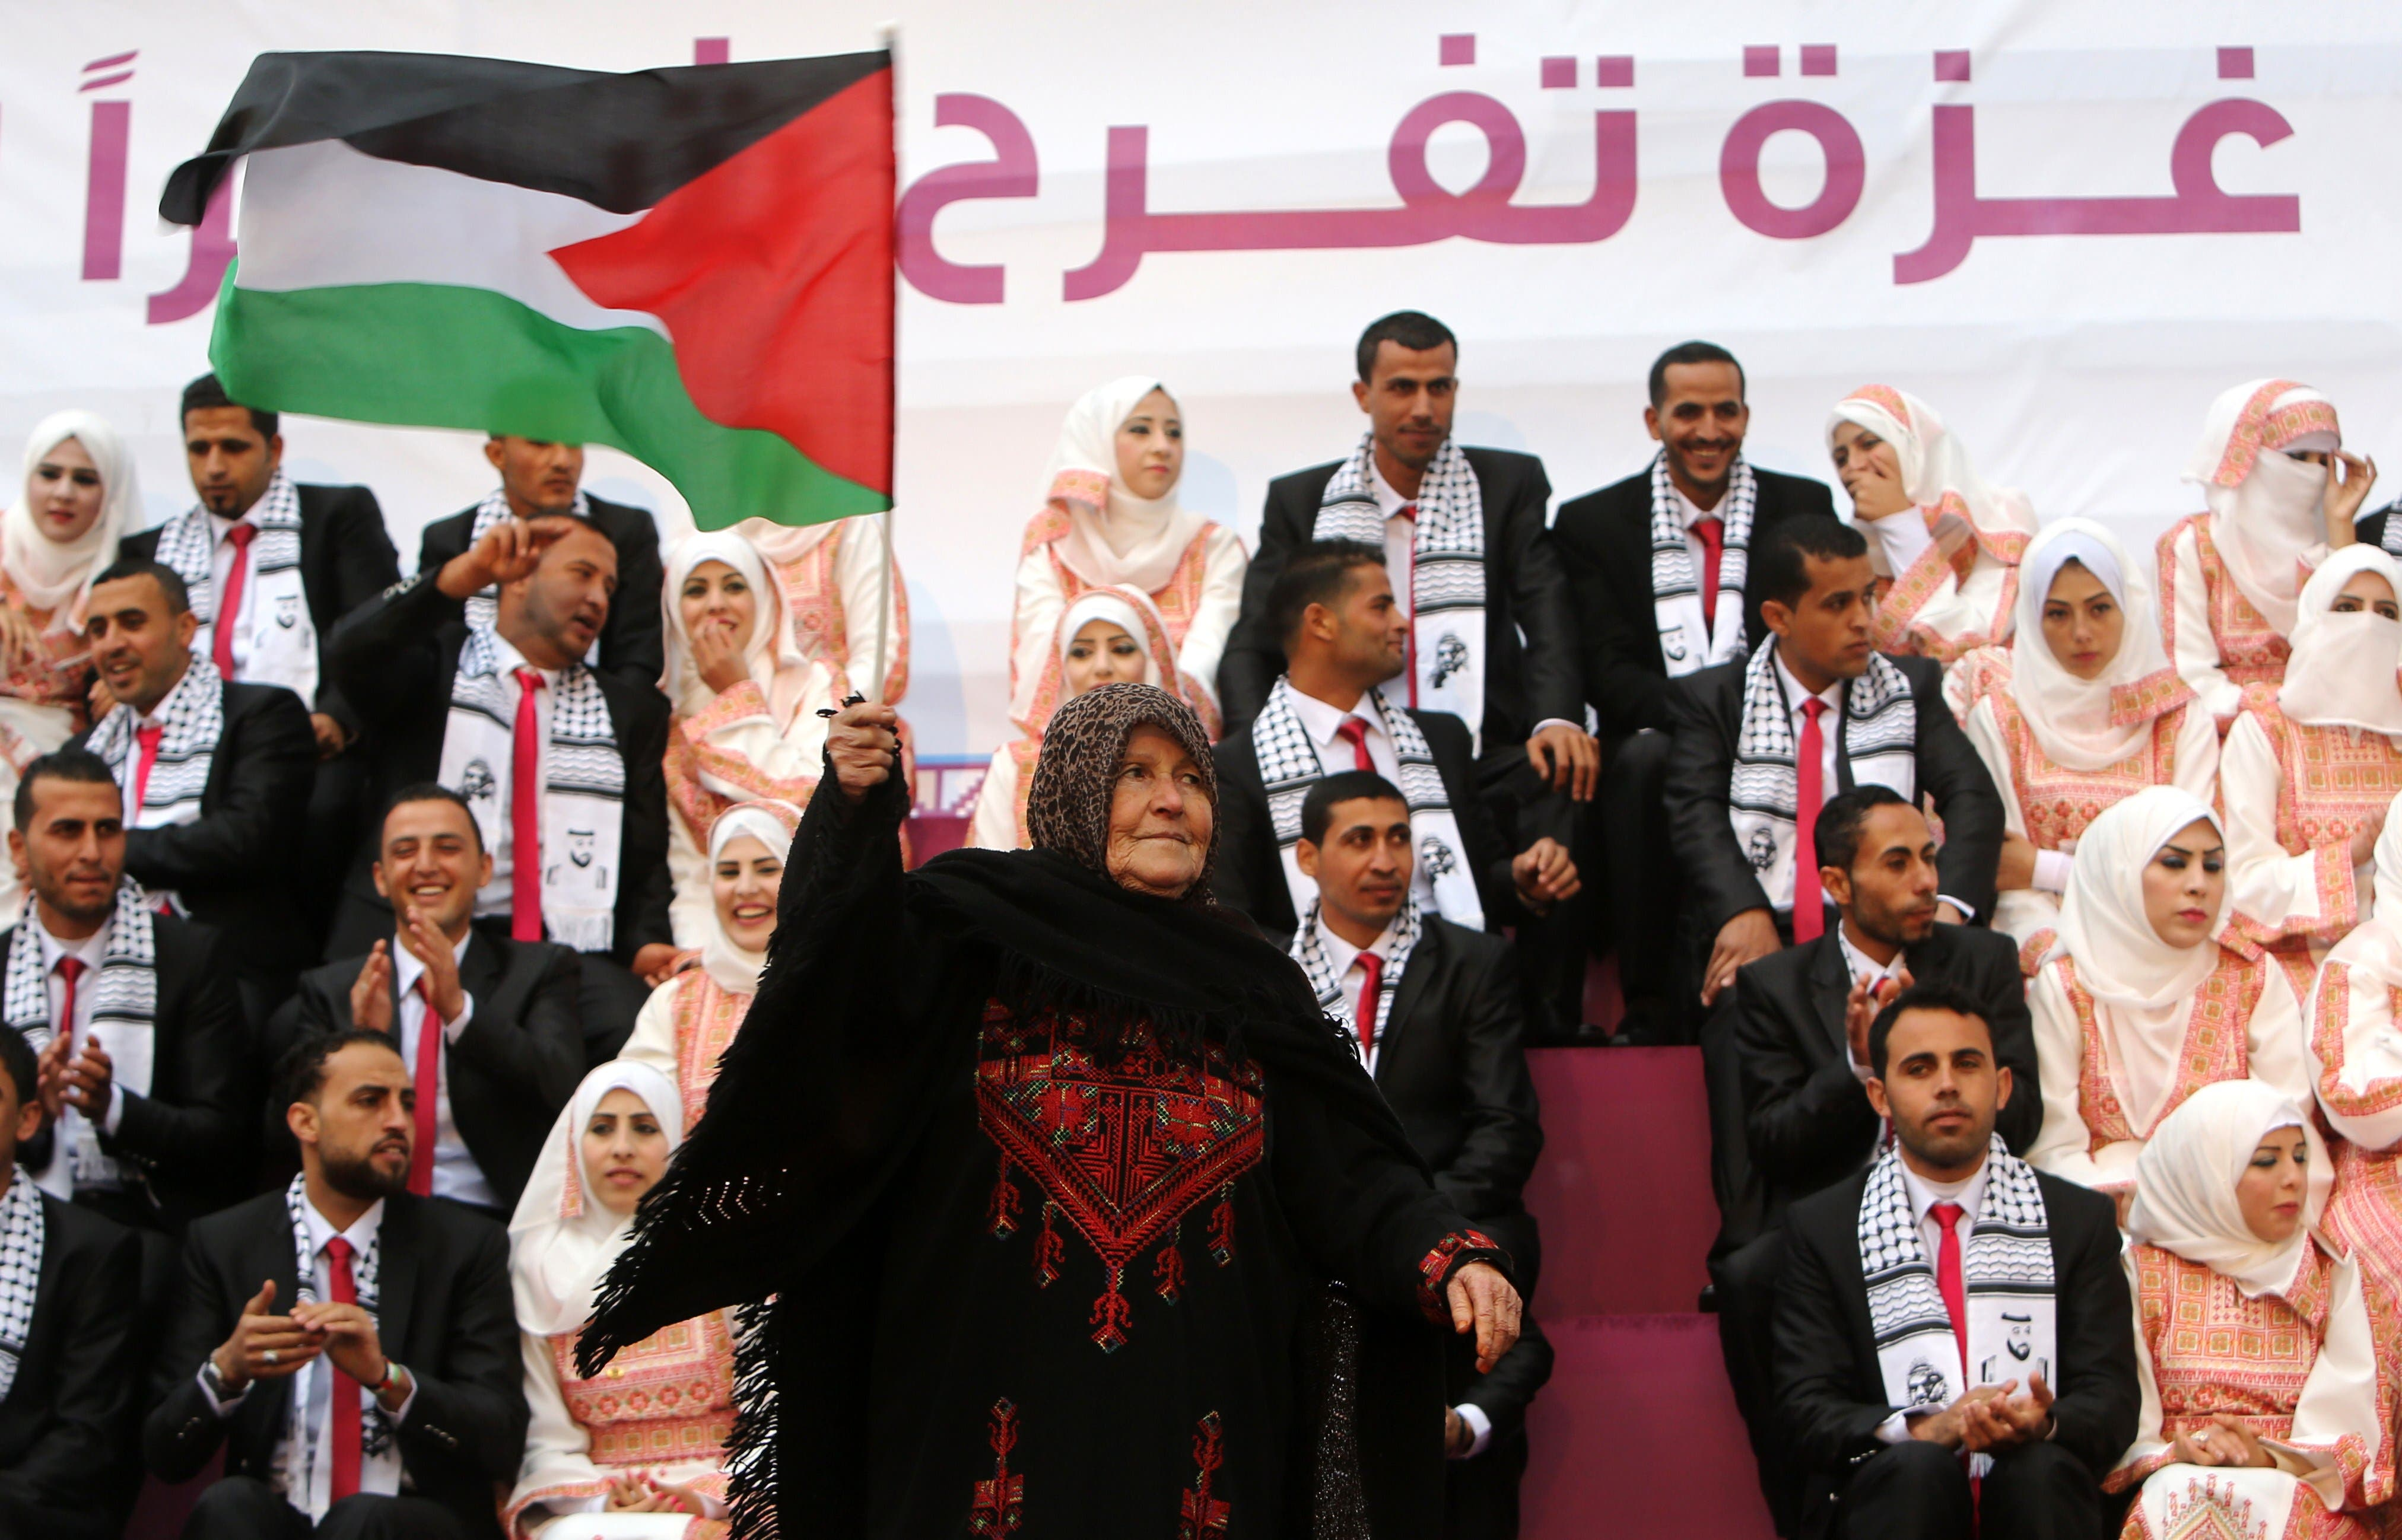 A Palestinian woman waves her national flag during a mass wedding ceremony in Gaza City, on April 11, 2015. AFP